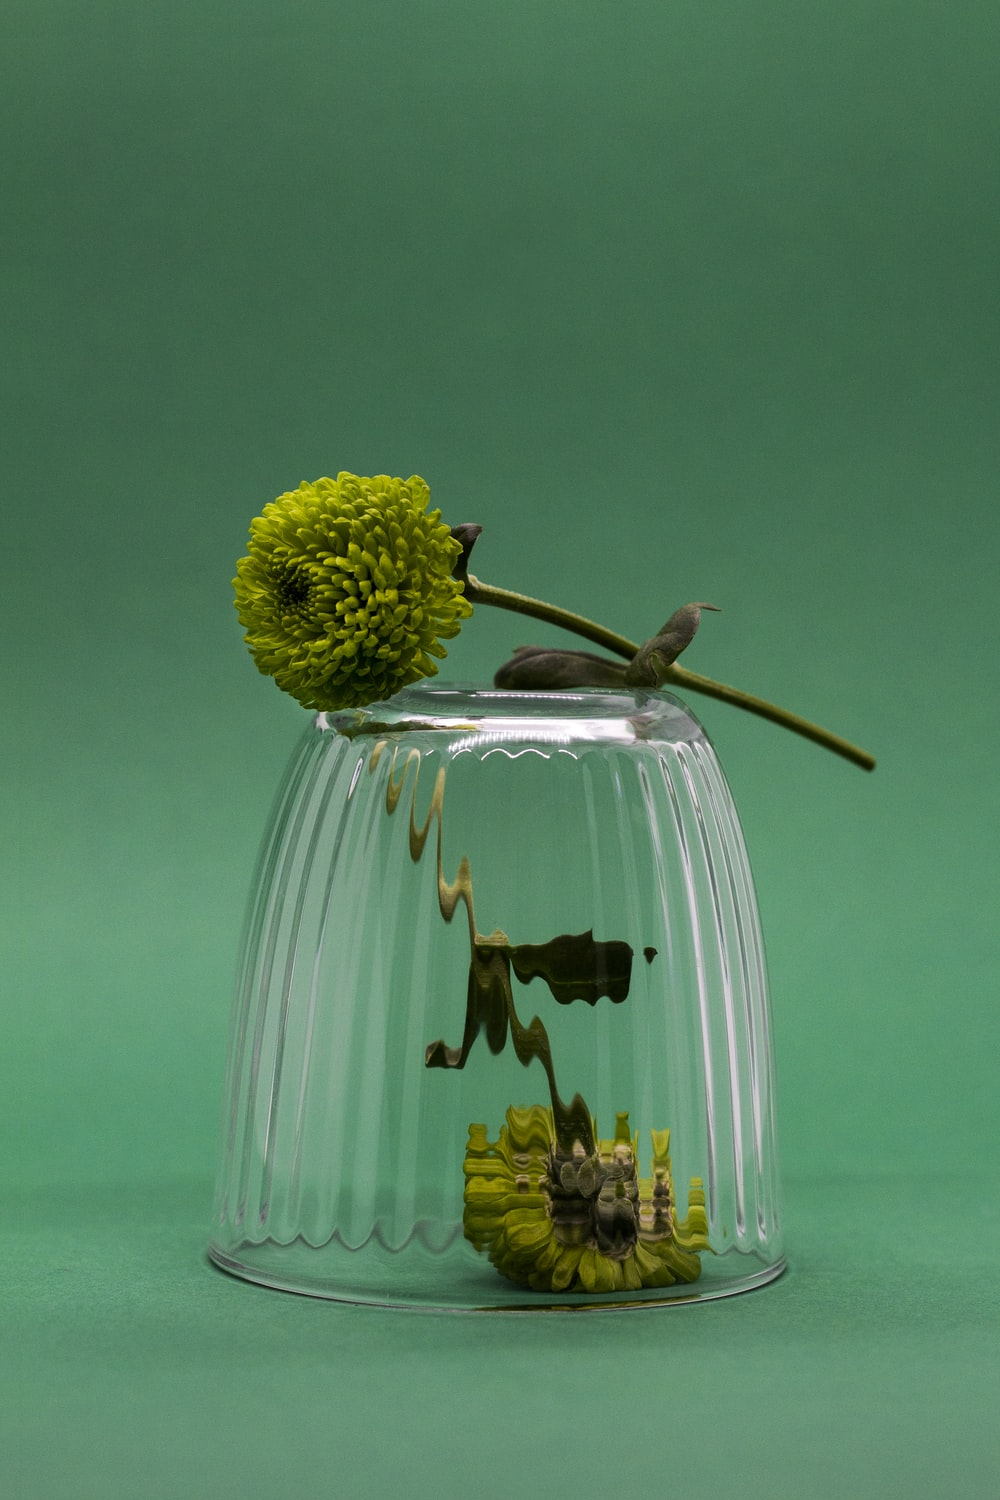 green and yellow flower bouquet in clear glass vase